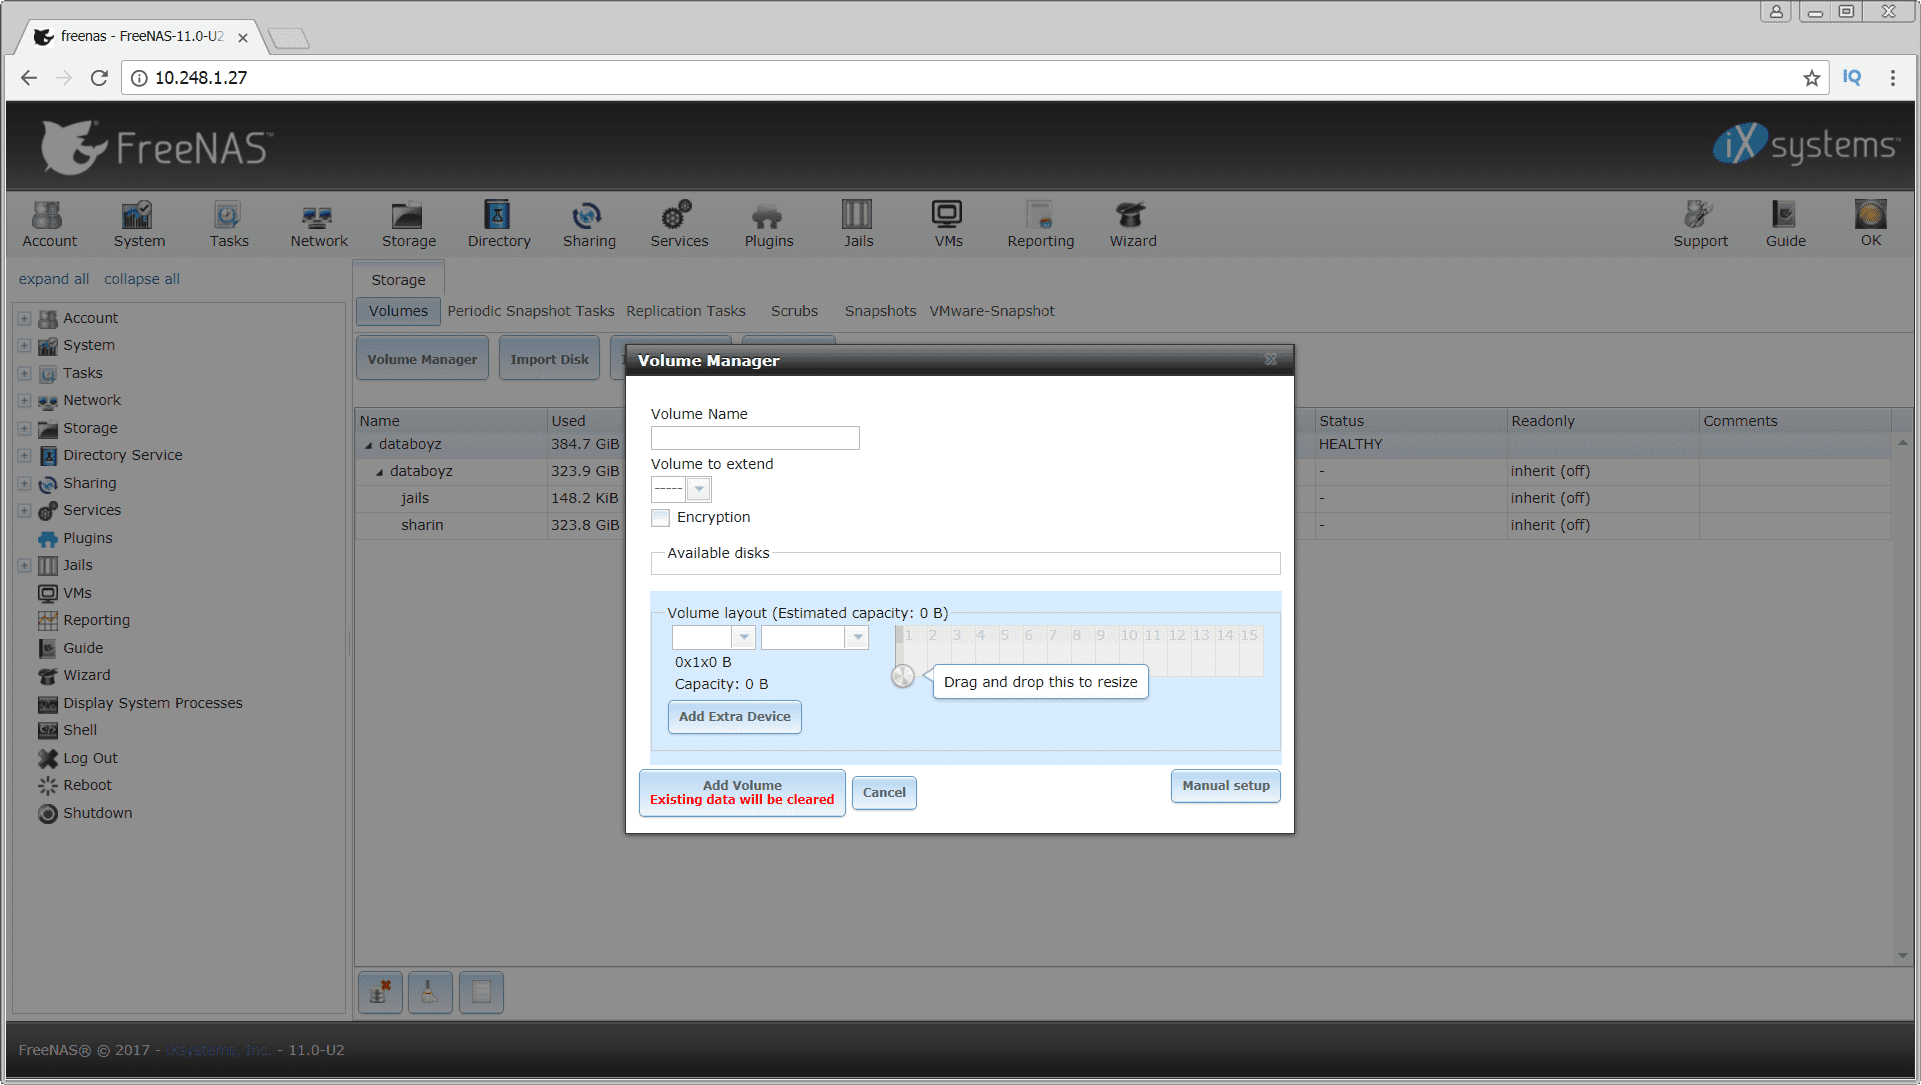 FreeNAS 11 2 releases: free Network Attached Storage (NAS